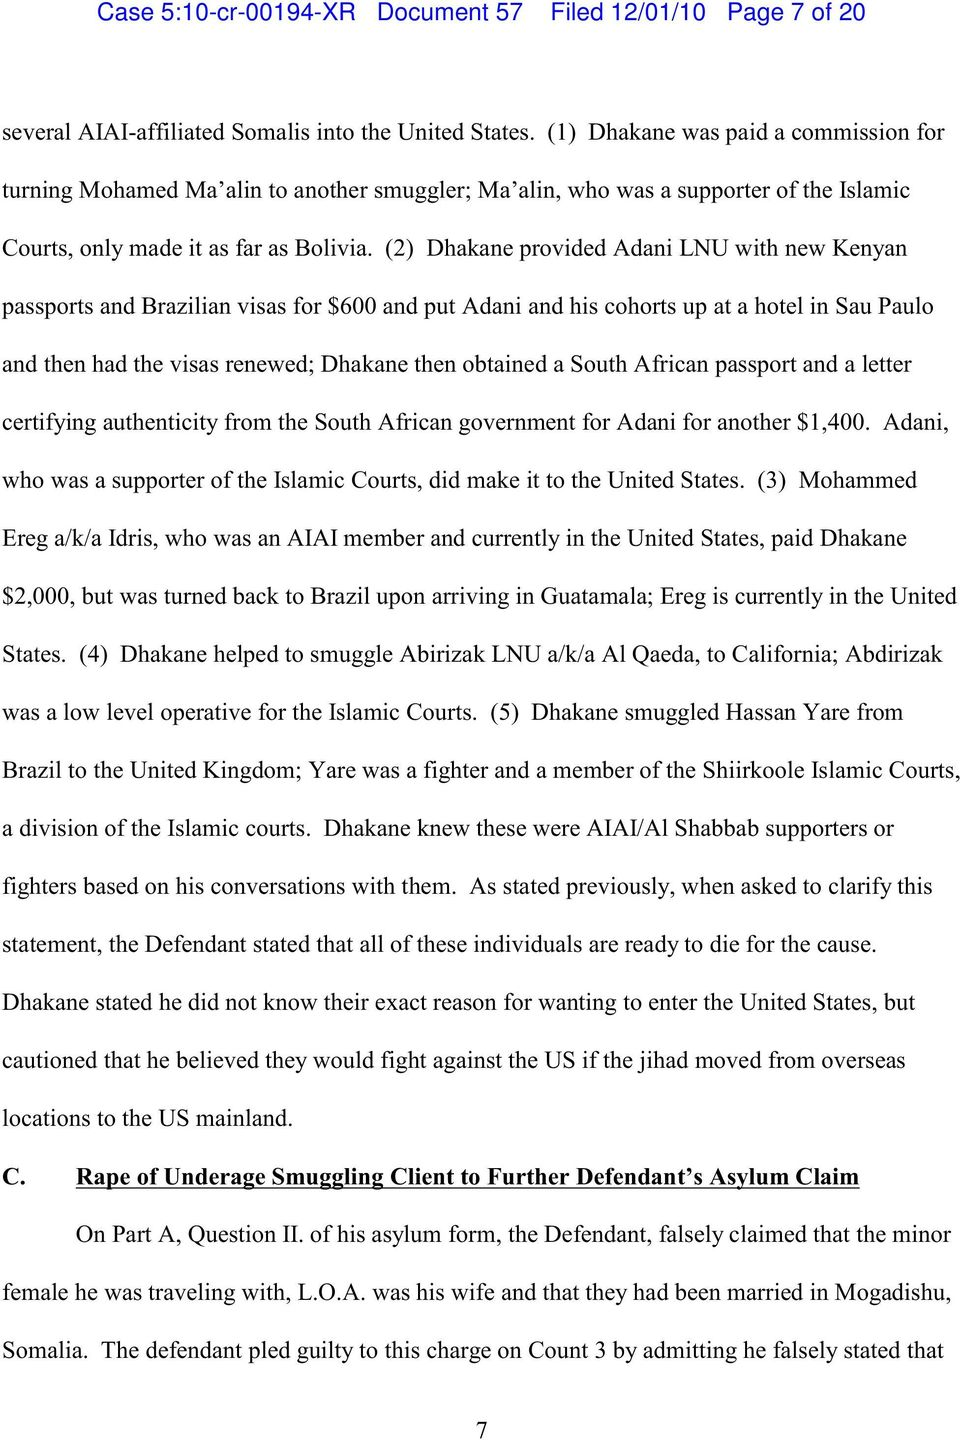 (2) Dhakane provided Adani LNU with new Kenyan passports and Brazilian visas for $600 and put Adani and his cohorts up at a hotel in Sau Paulo and then had the visas renewed; Dhakane then obtained a